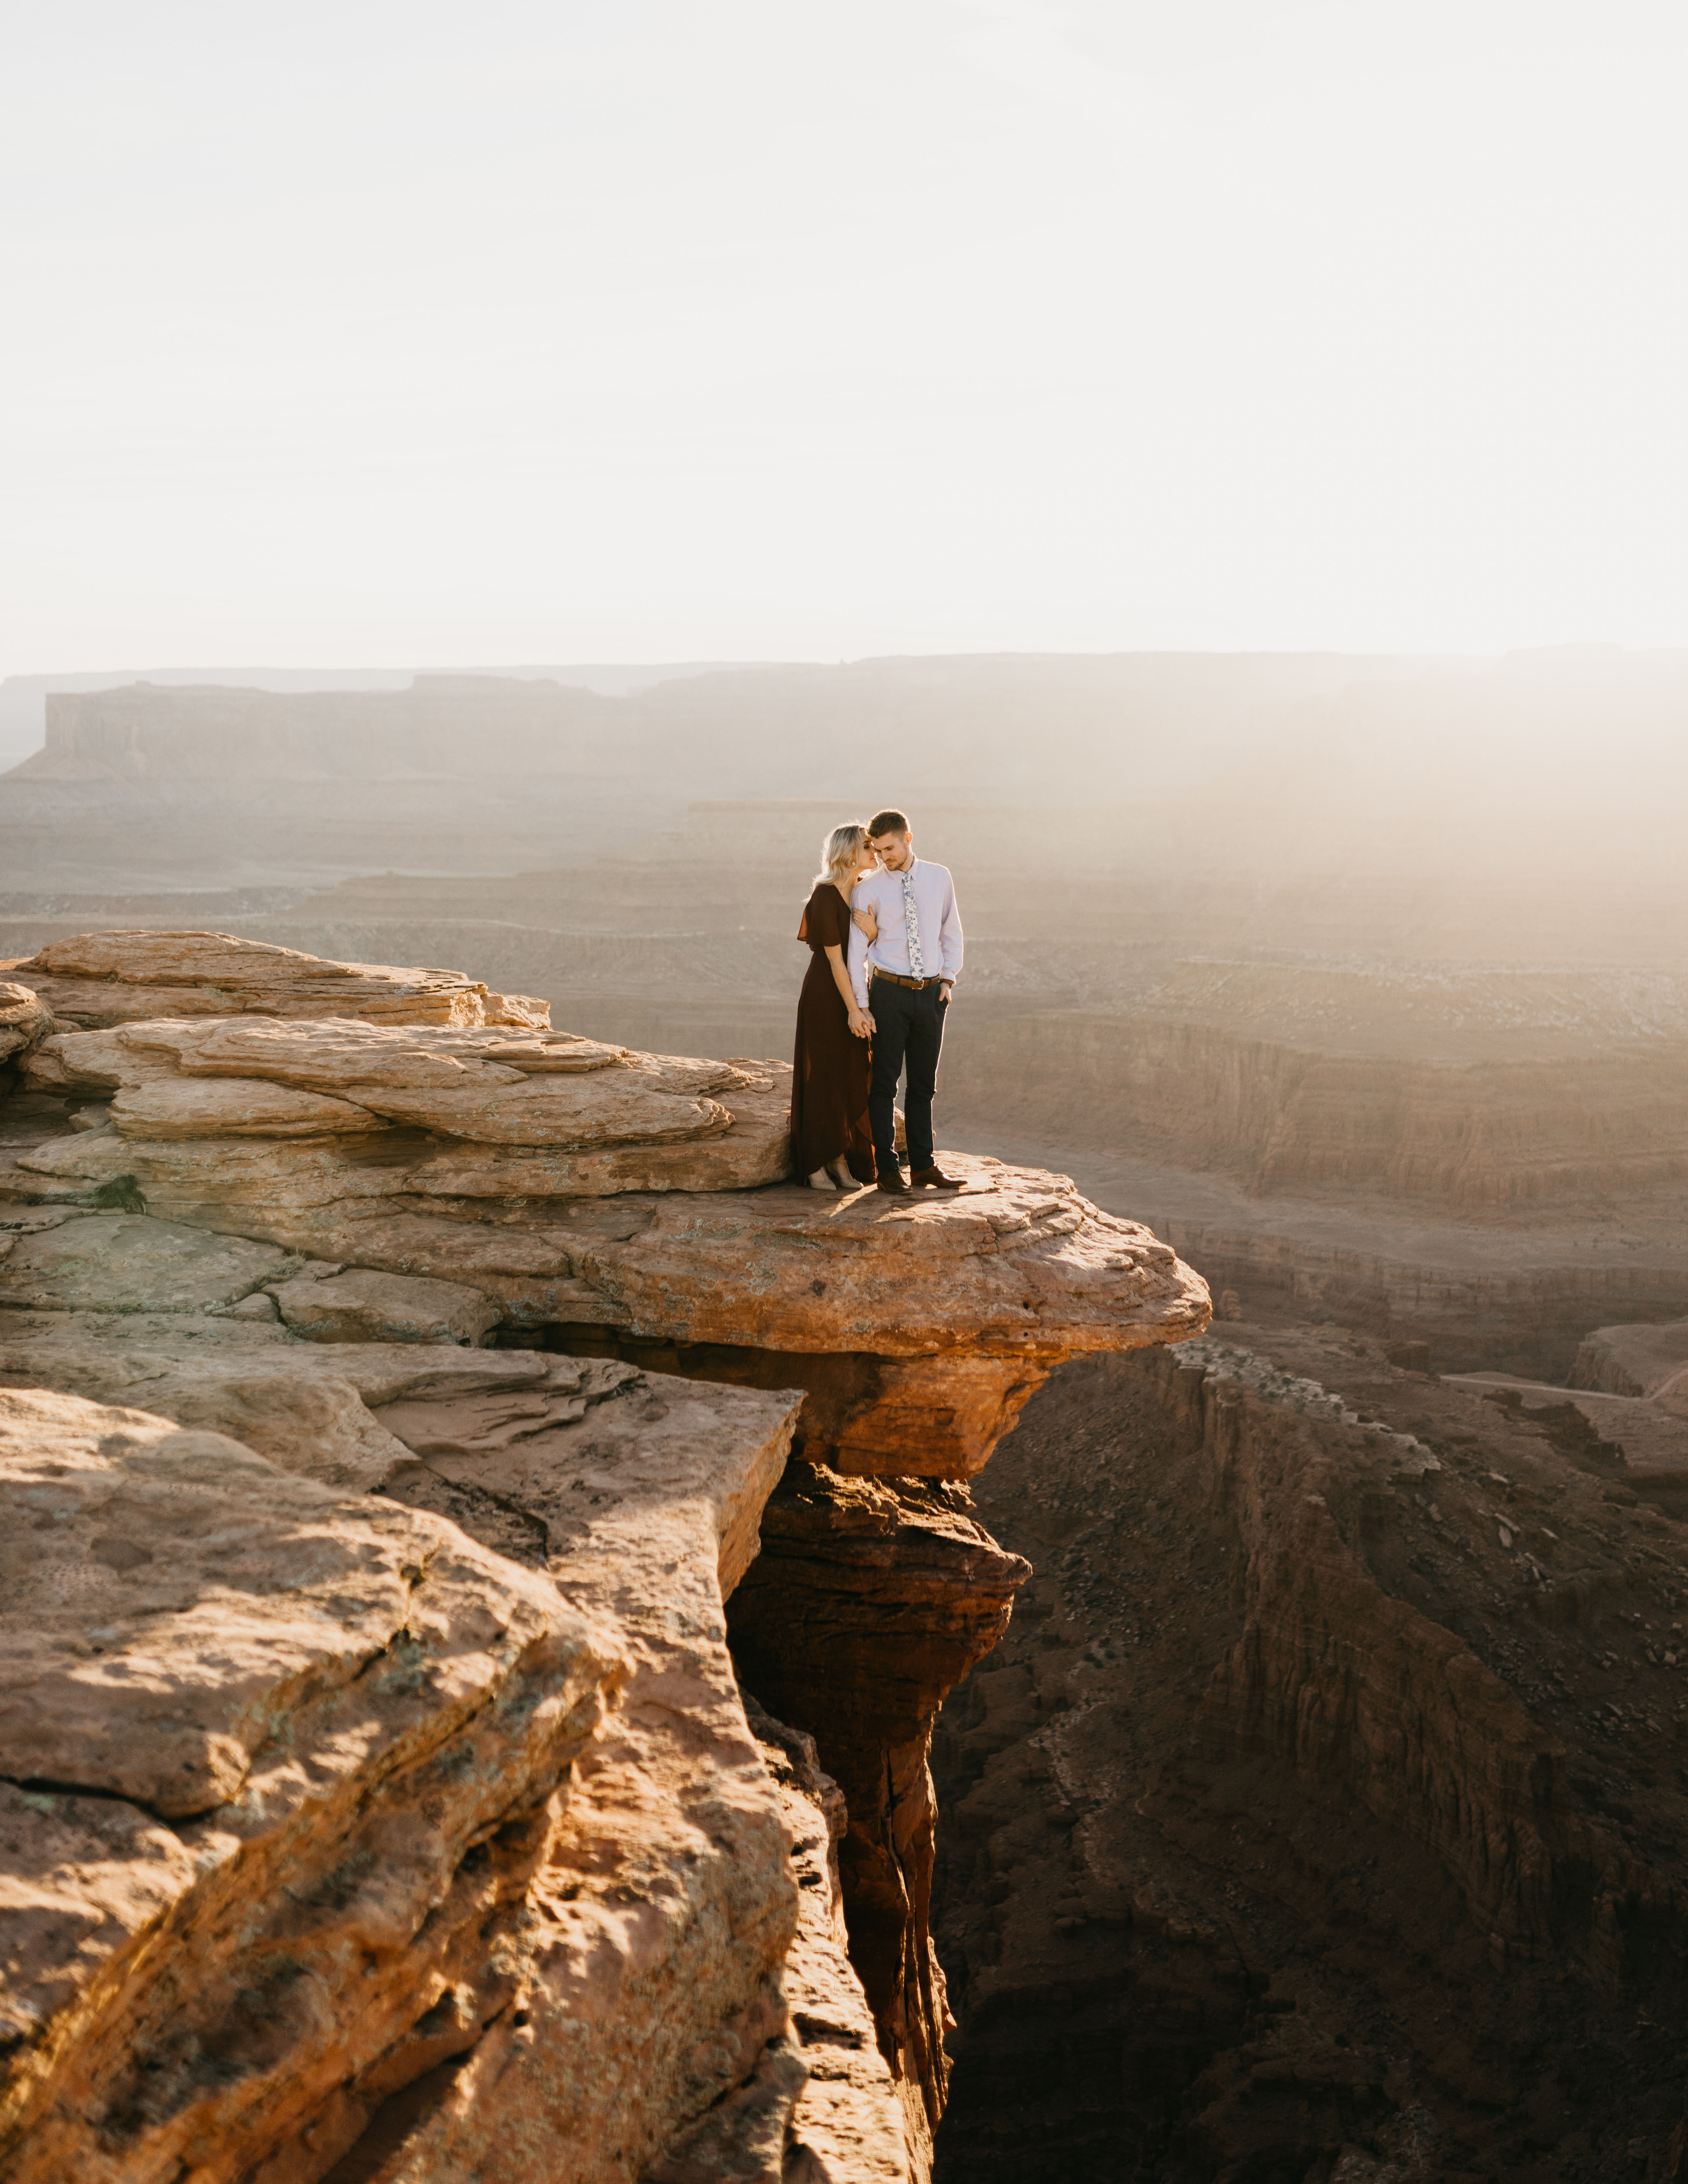 destination engagement couple state park top of cliff canyon